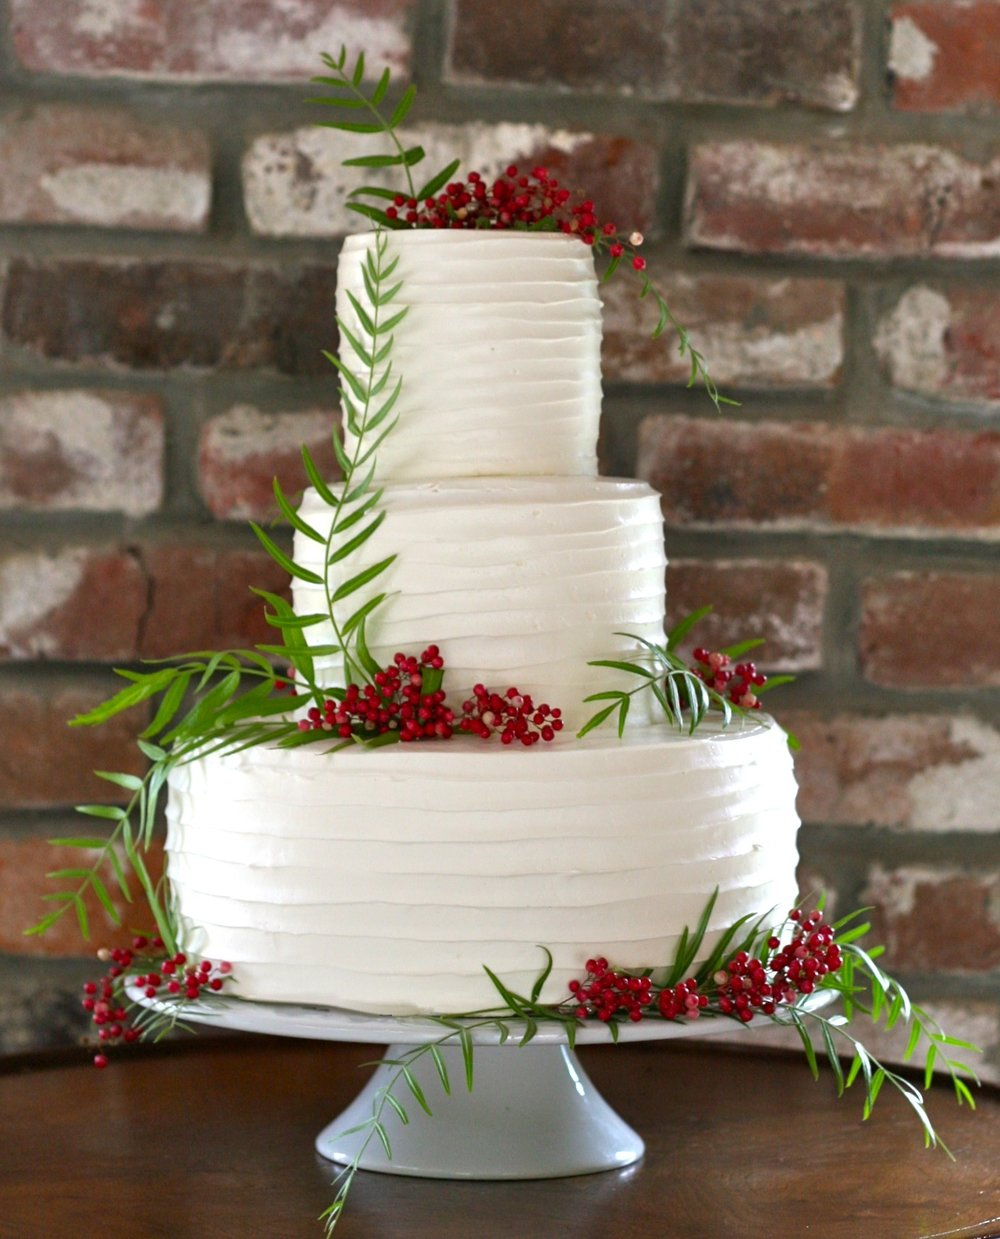 7 Fresh Greenery Ideas To Style Your Cake | Pink Peppercorn cake by Cake Bloom